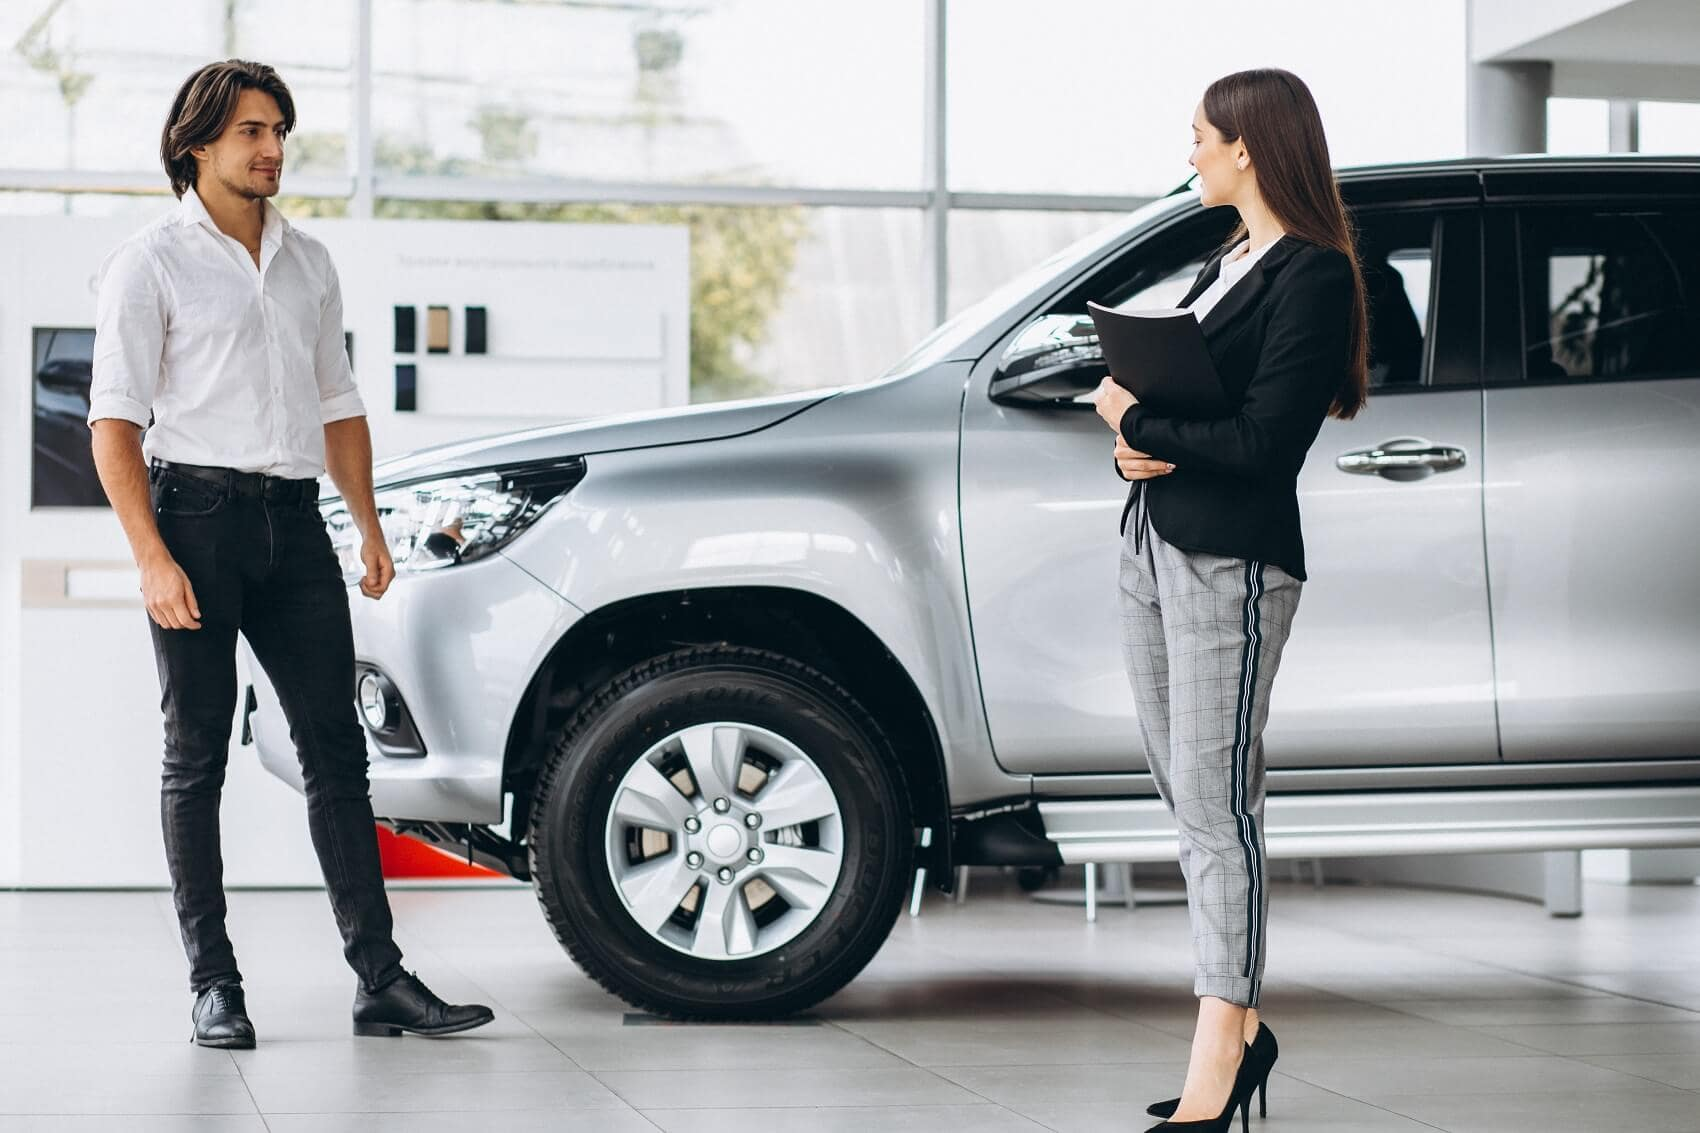 About Ira Toyota of Hyannis